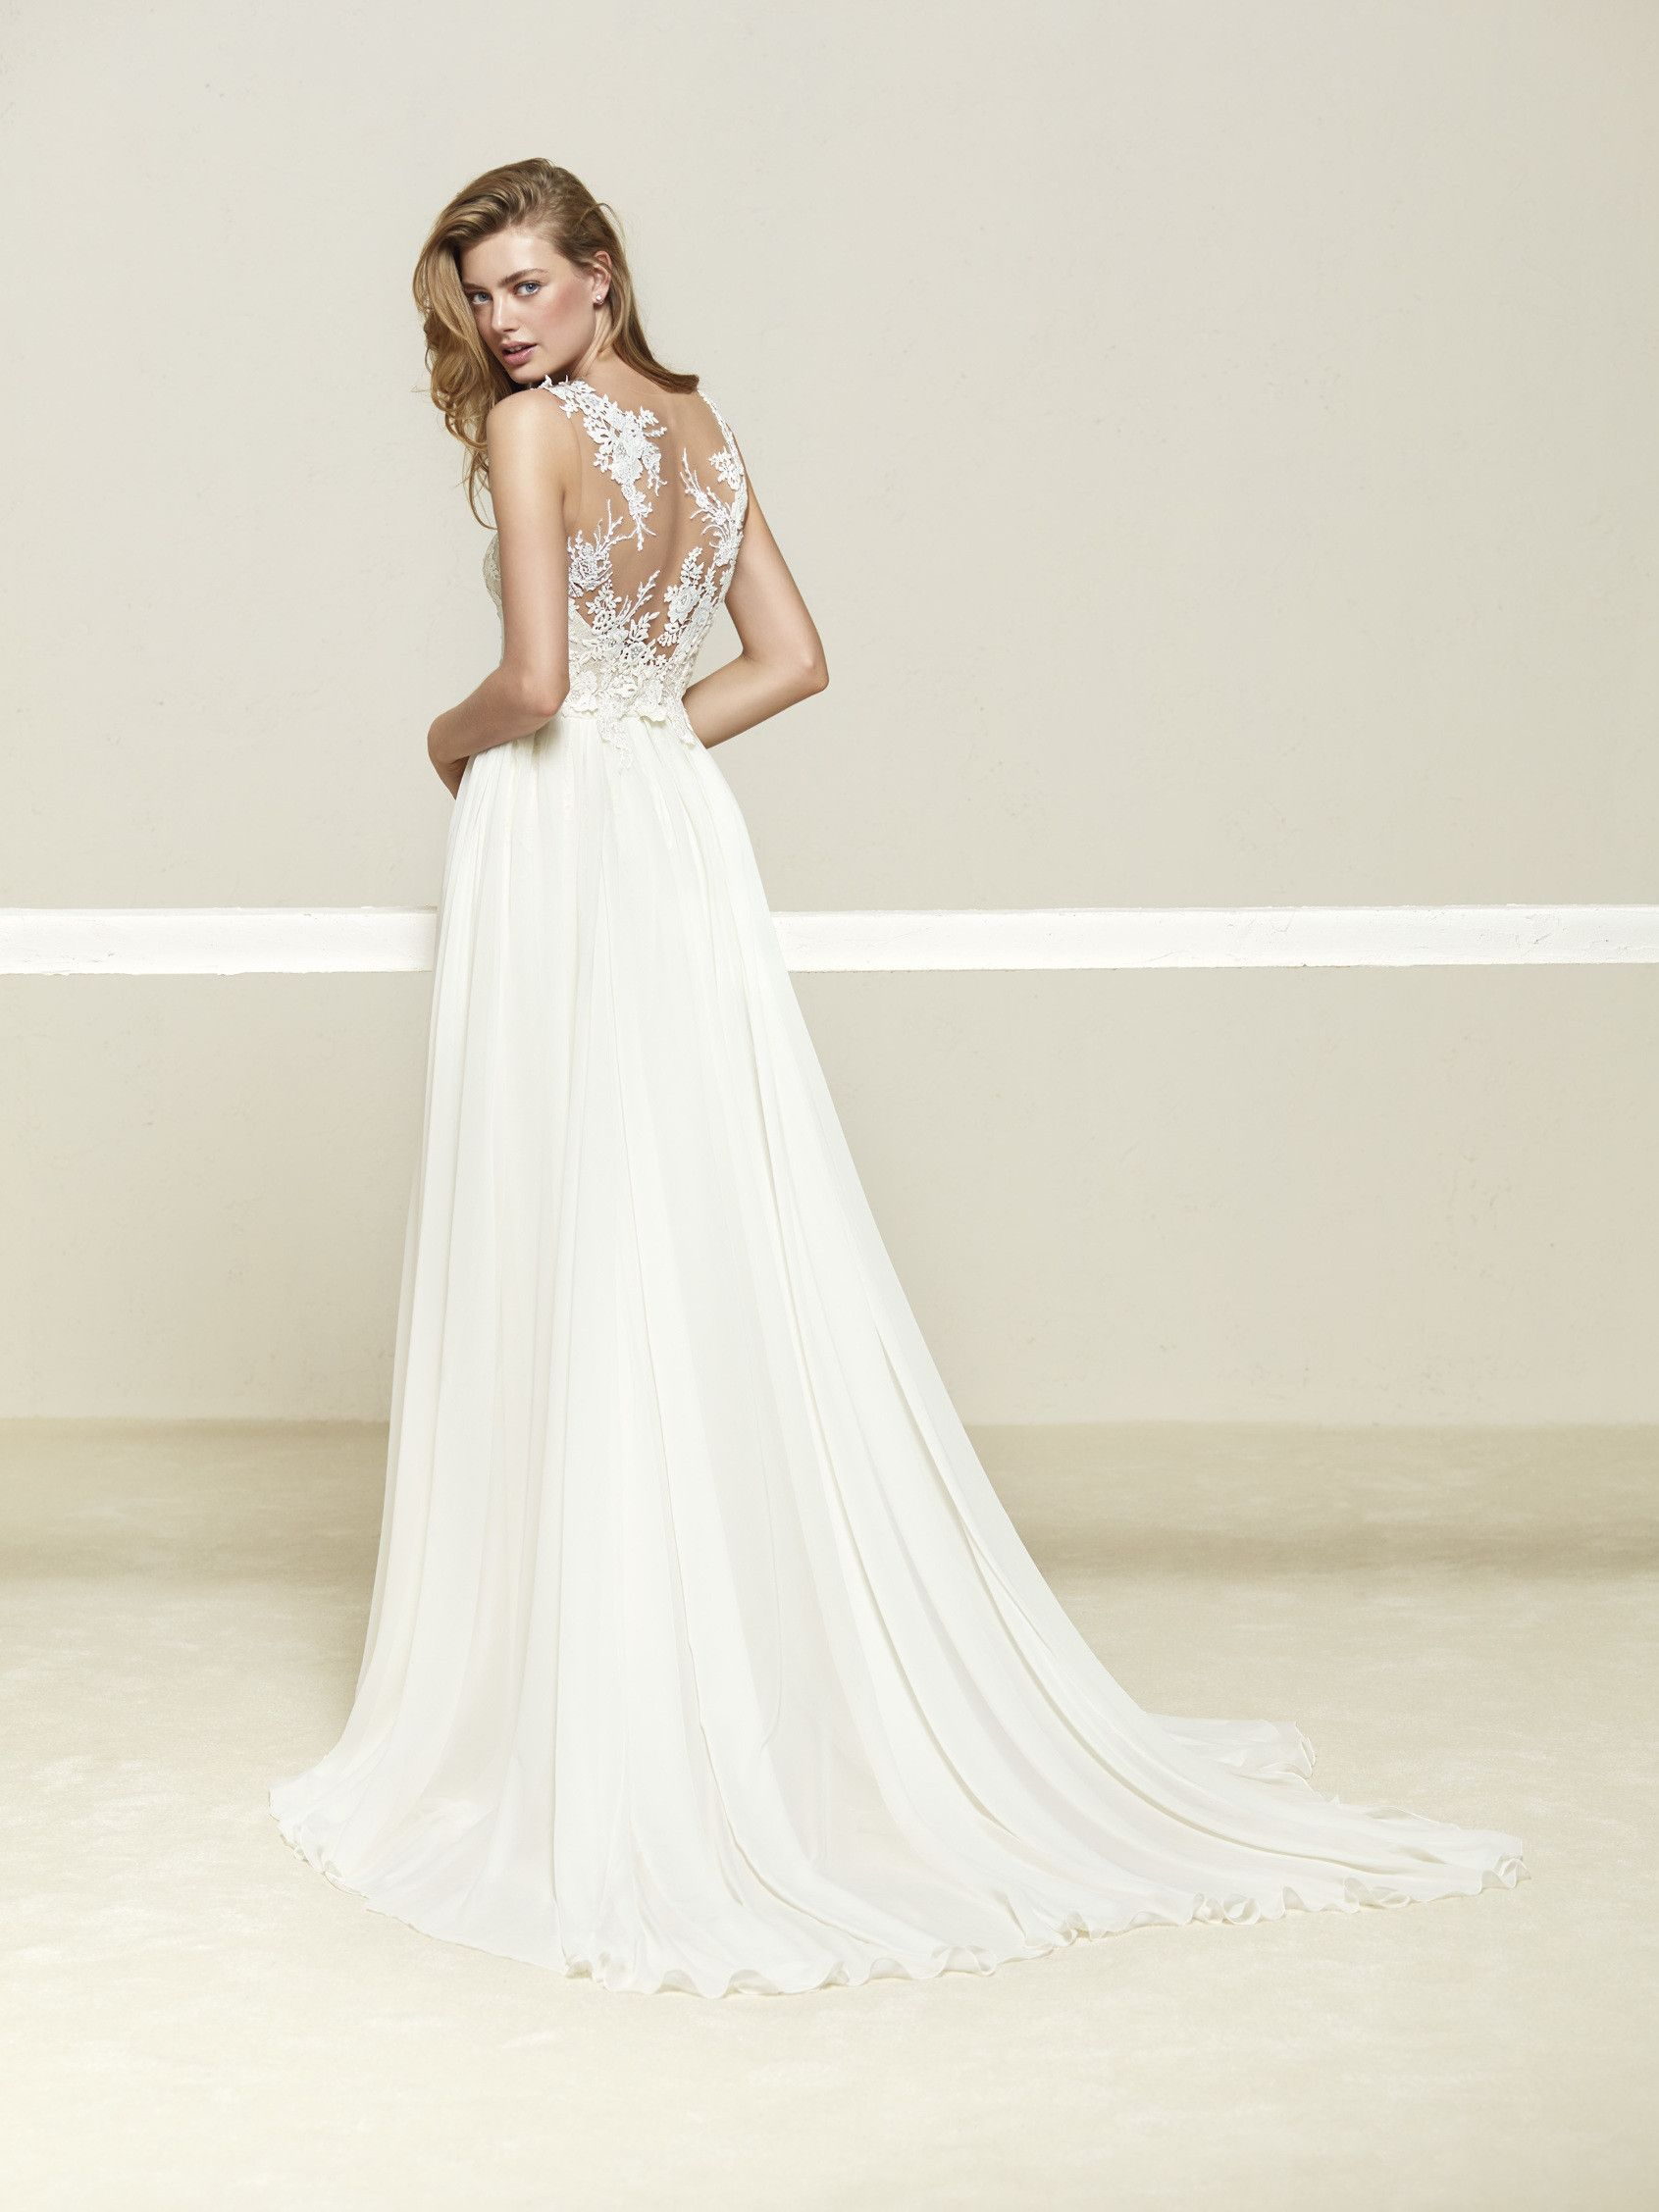 Wedding dress with beautiful layered skirt - Drepea - Pronovias ...